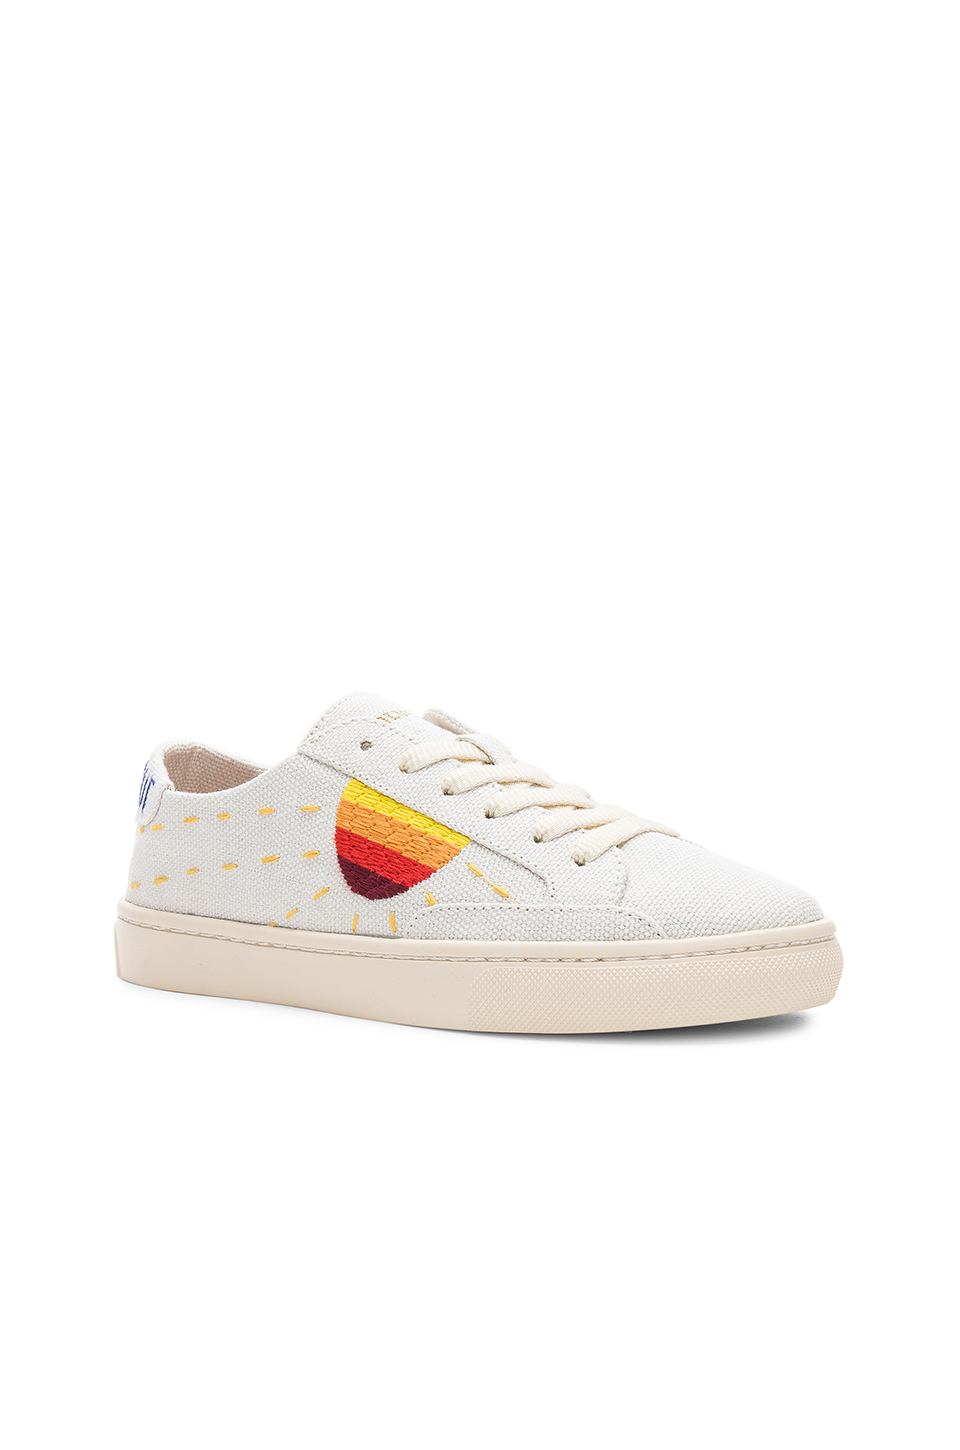 f1c7e70cd Embroidered Sun Sneaker, Soludos